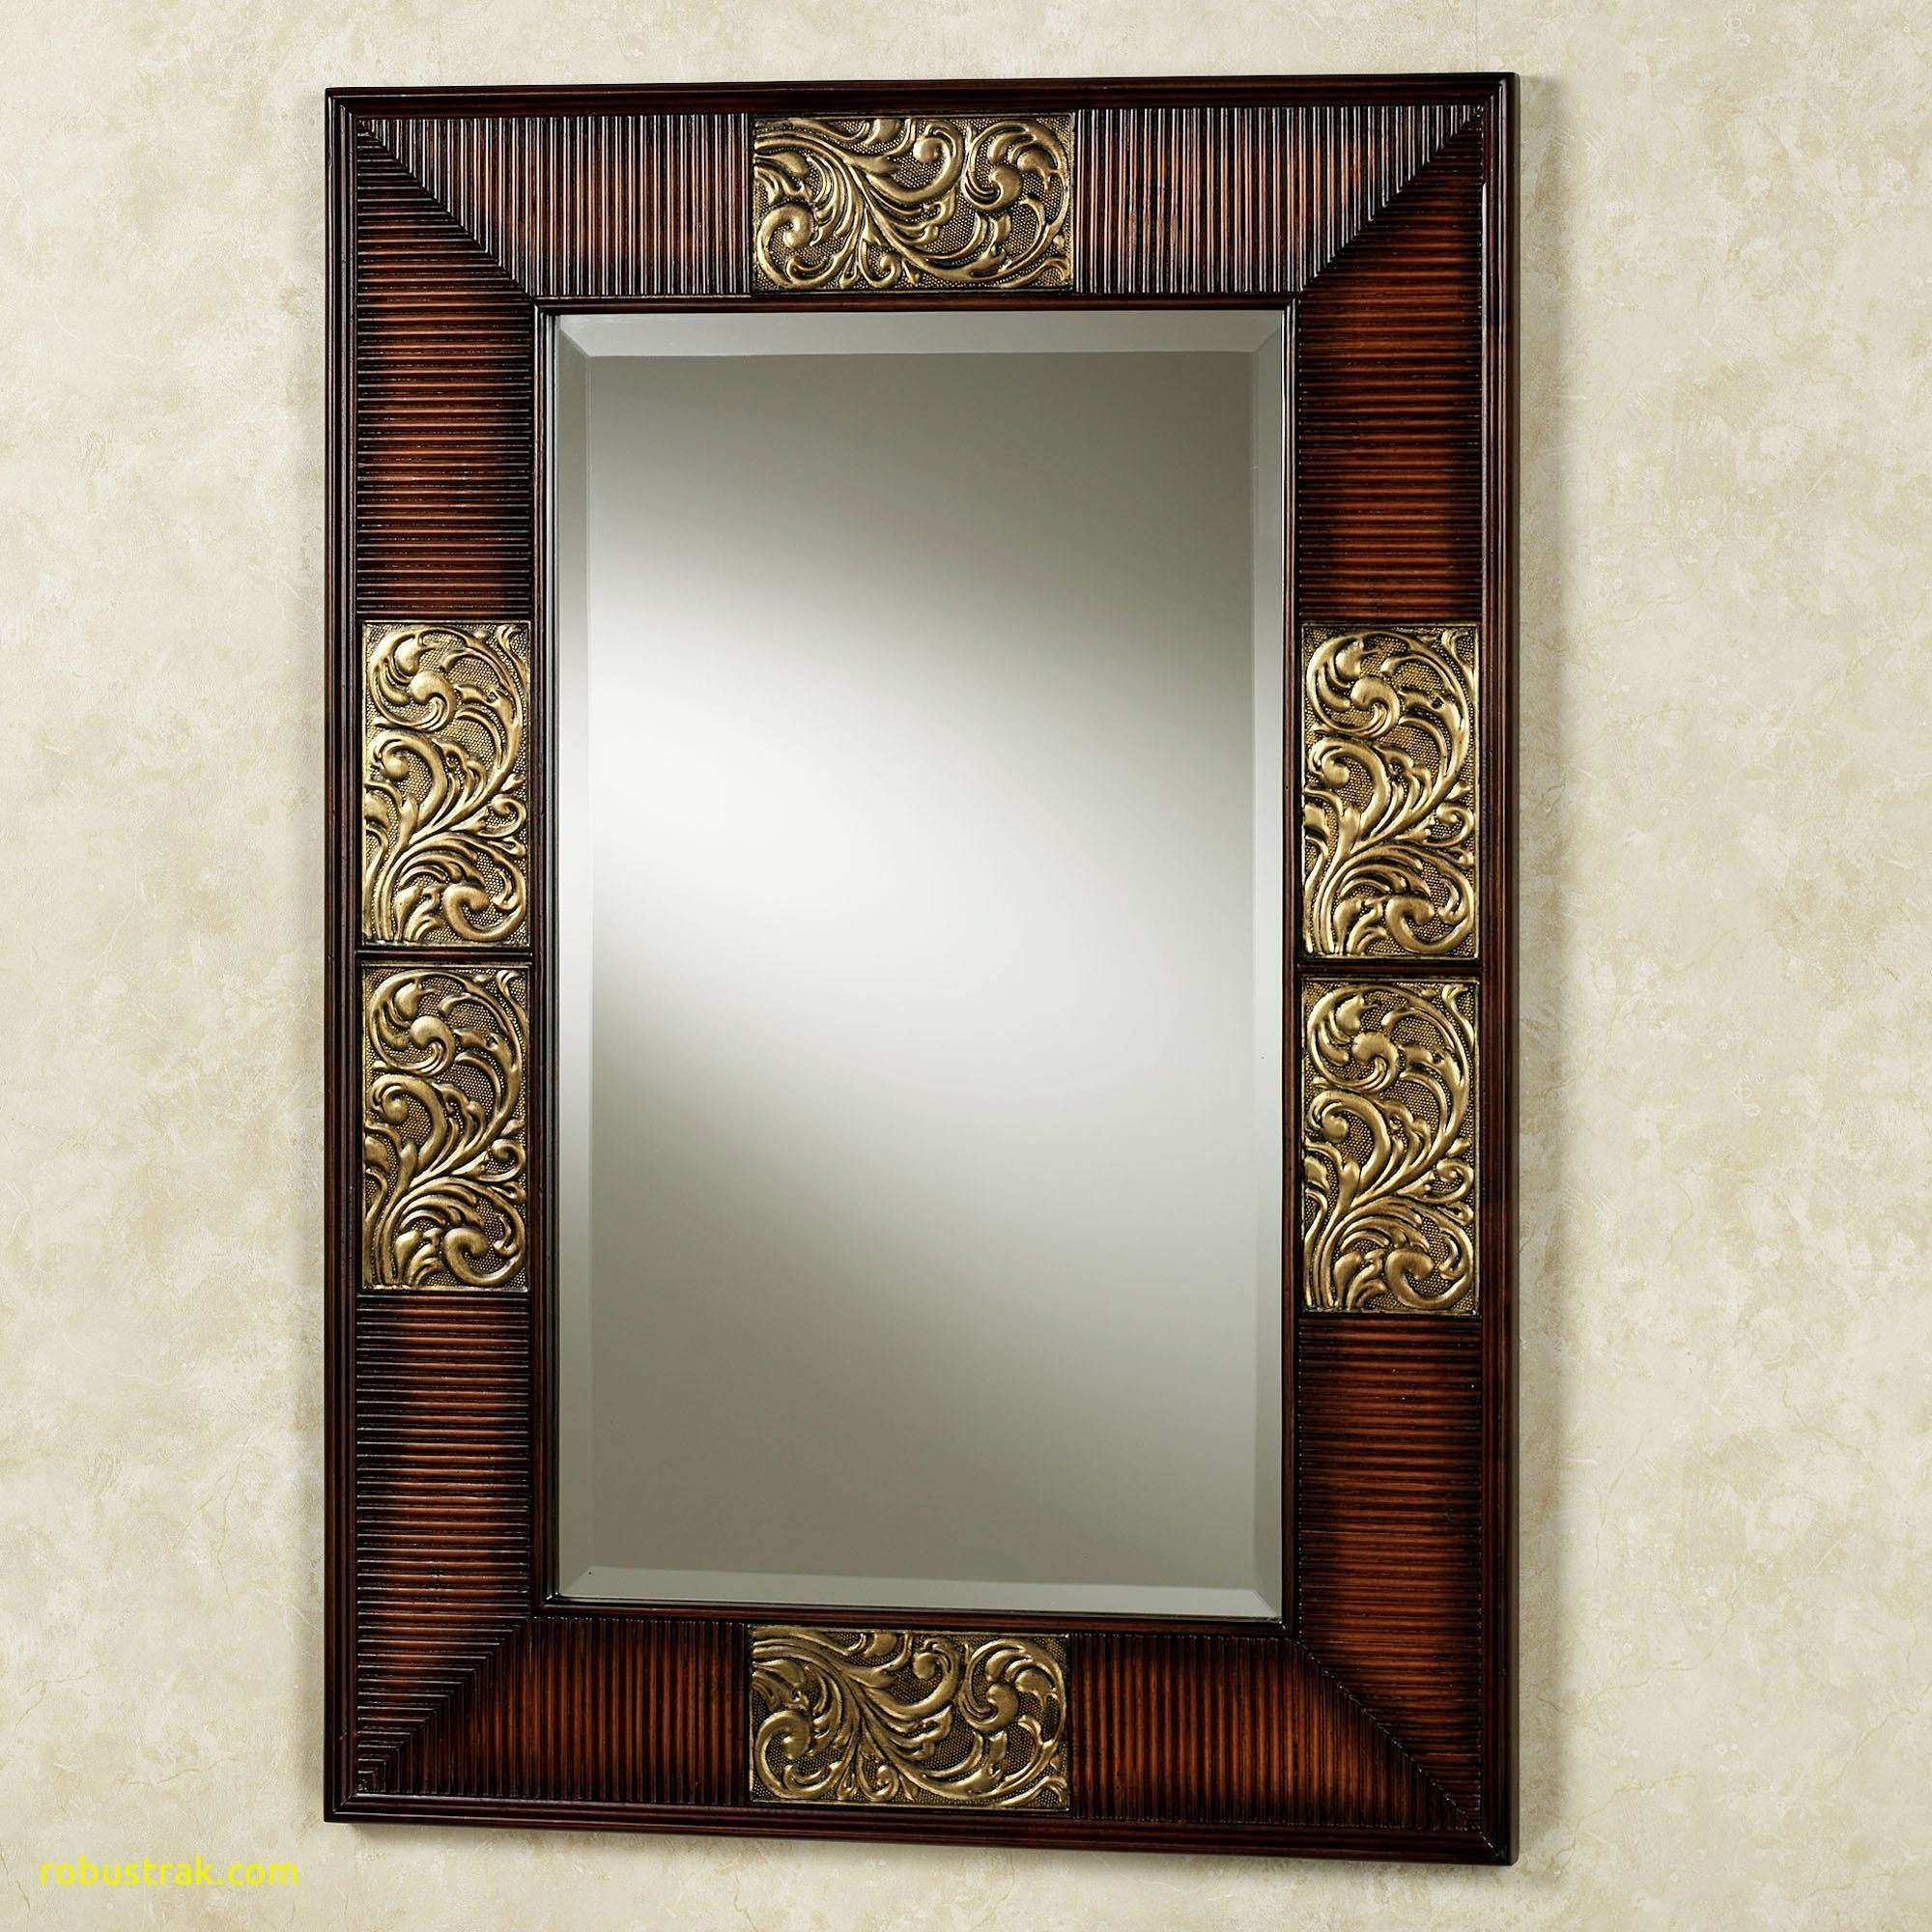 Awesome Black and Gold Wall Mirror